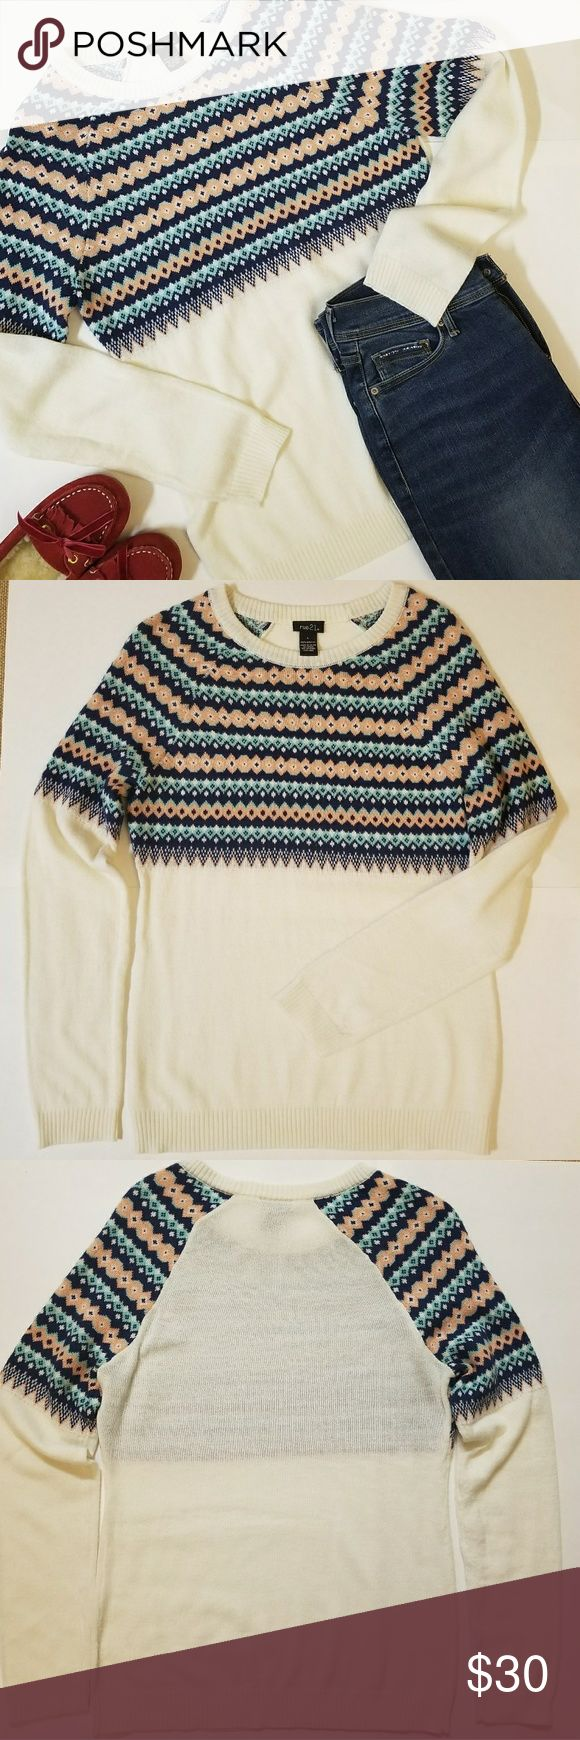 """New! Rue 21 Stylish  Sweater Cozy and stylish  sweater.  No matter the temperature, you'll look cool! Perfect with pair jeans!  Size L on the tag, but in my opinion this  sweater fit Size L (Juniors) or Size S/M(Women). Please ck measurements below. New without tag. No defects. Measurements taken while laying down flat with no stretching:  Chest (armpit to armpit) 18"""" Length (top of the shoulder down to the bottom) 22""""  Smoke free and pet free home. *Listing for sweater only. Pants and shoes…"""